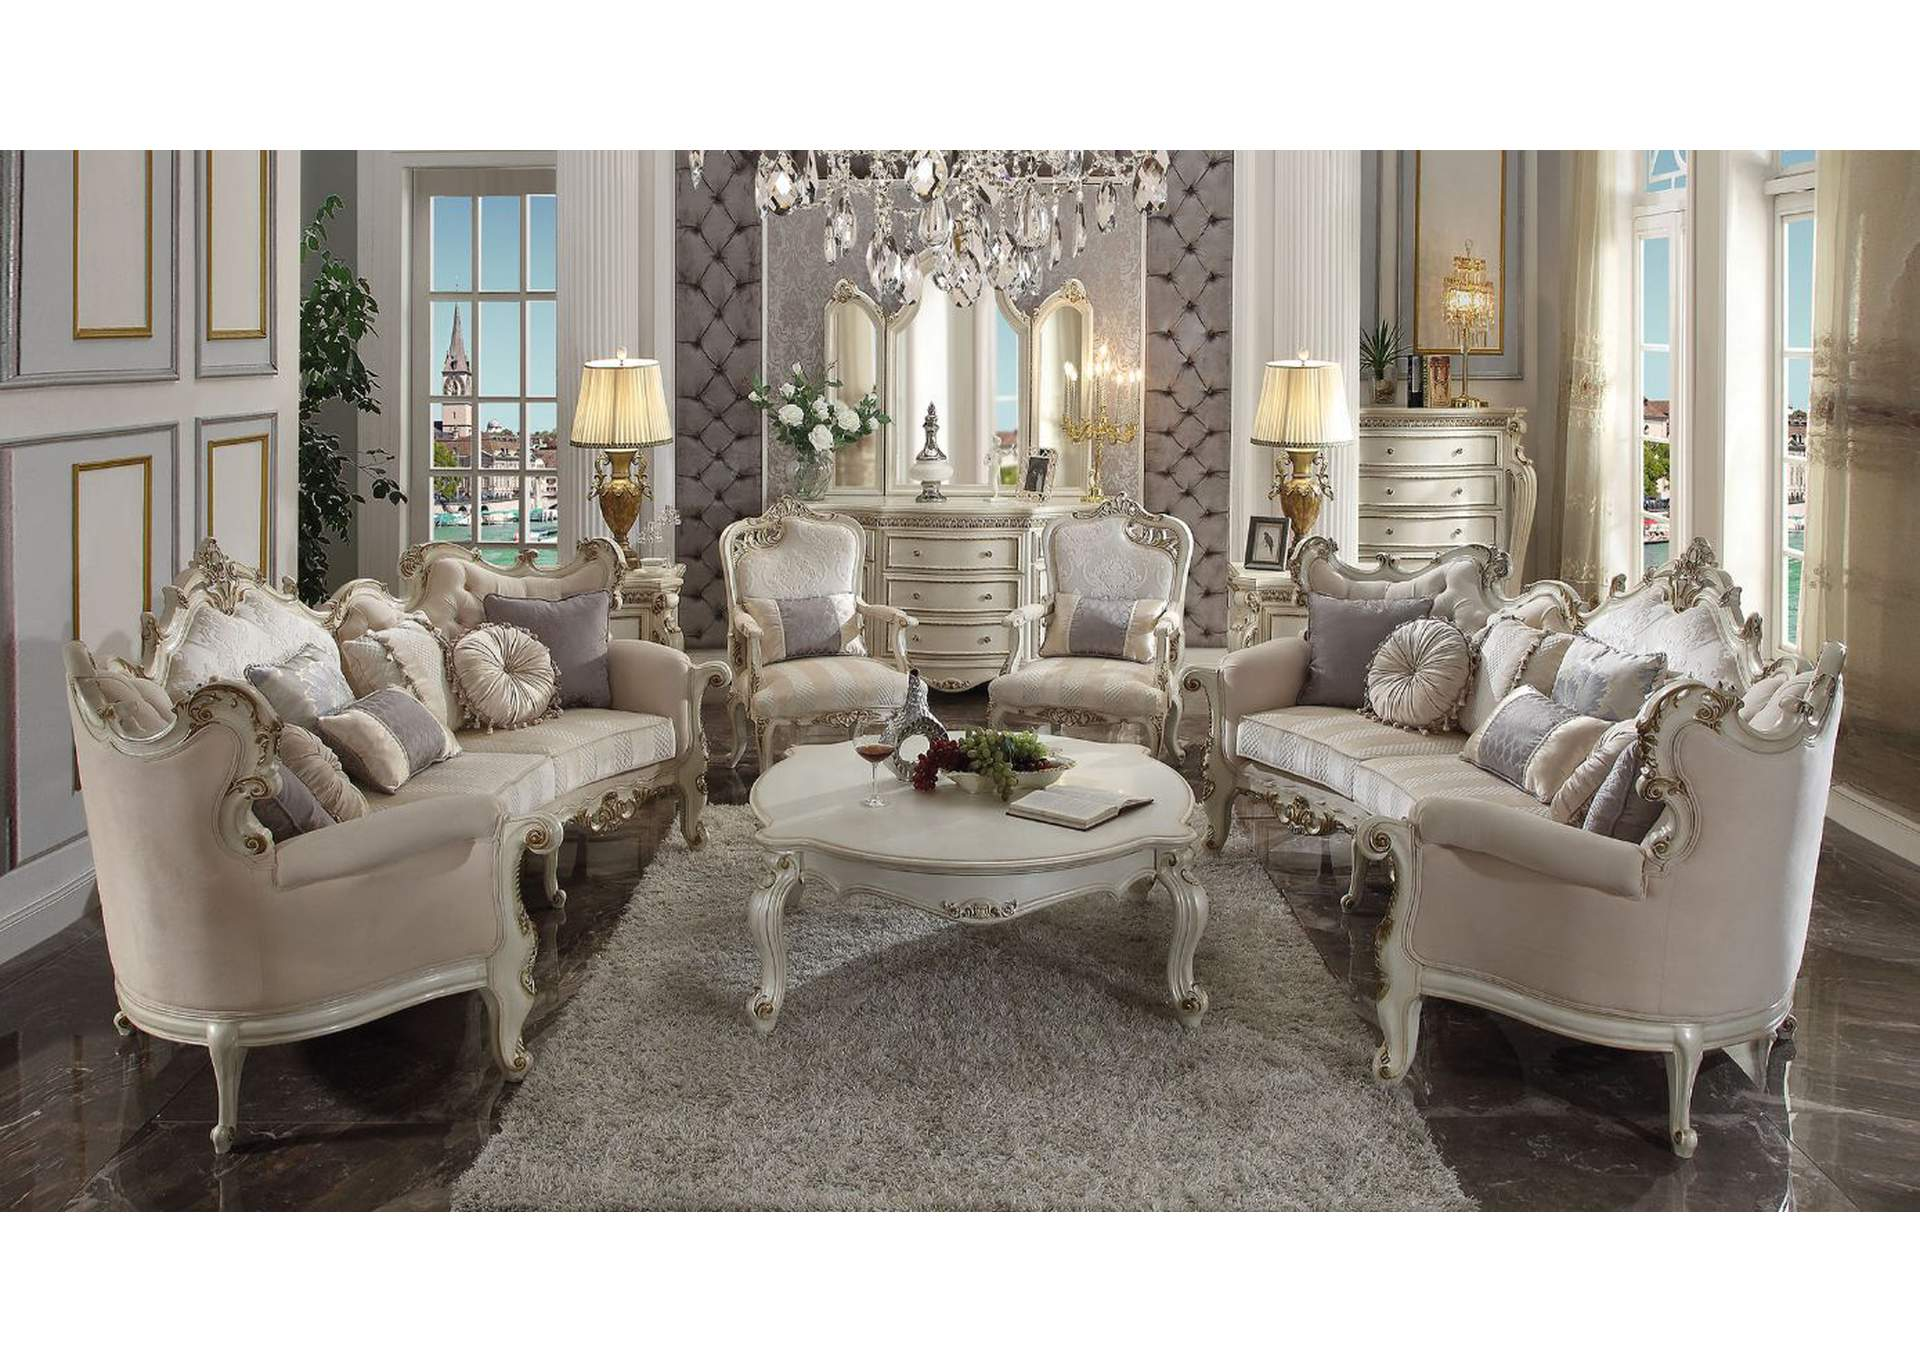 Picardy Fabric & Antique Pearl Sofa,Acme